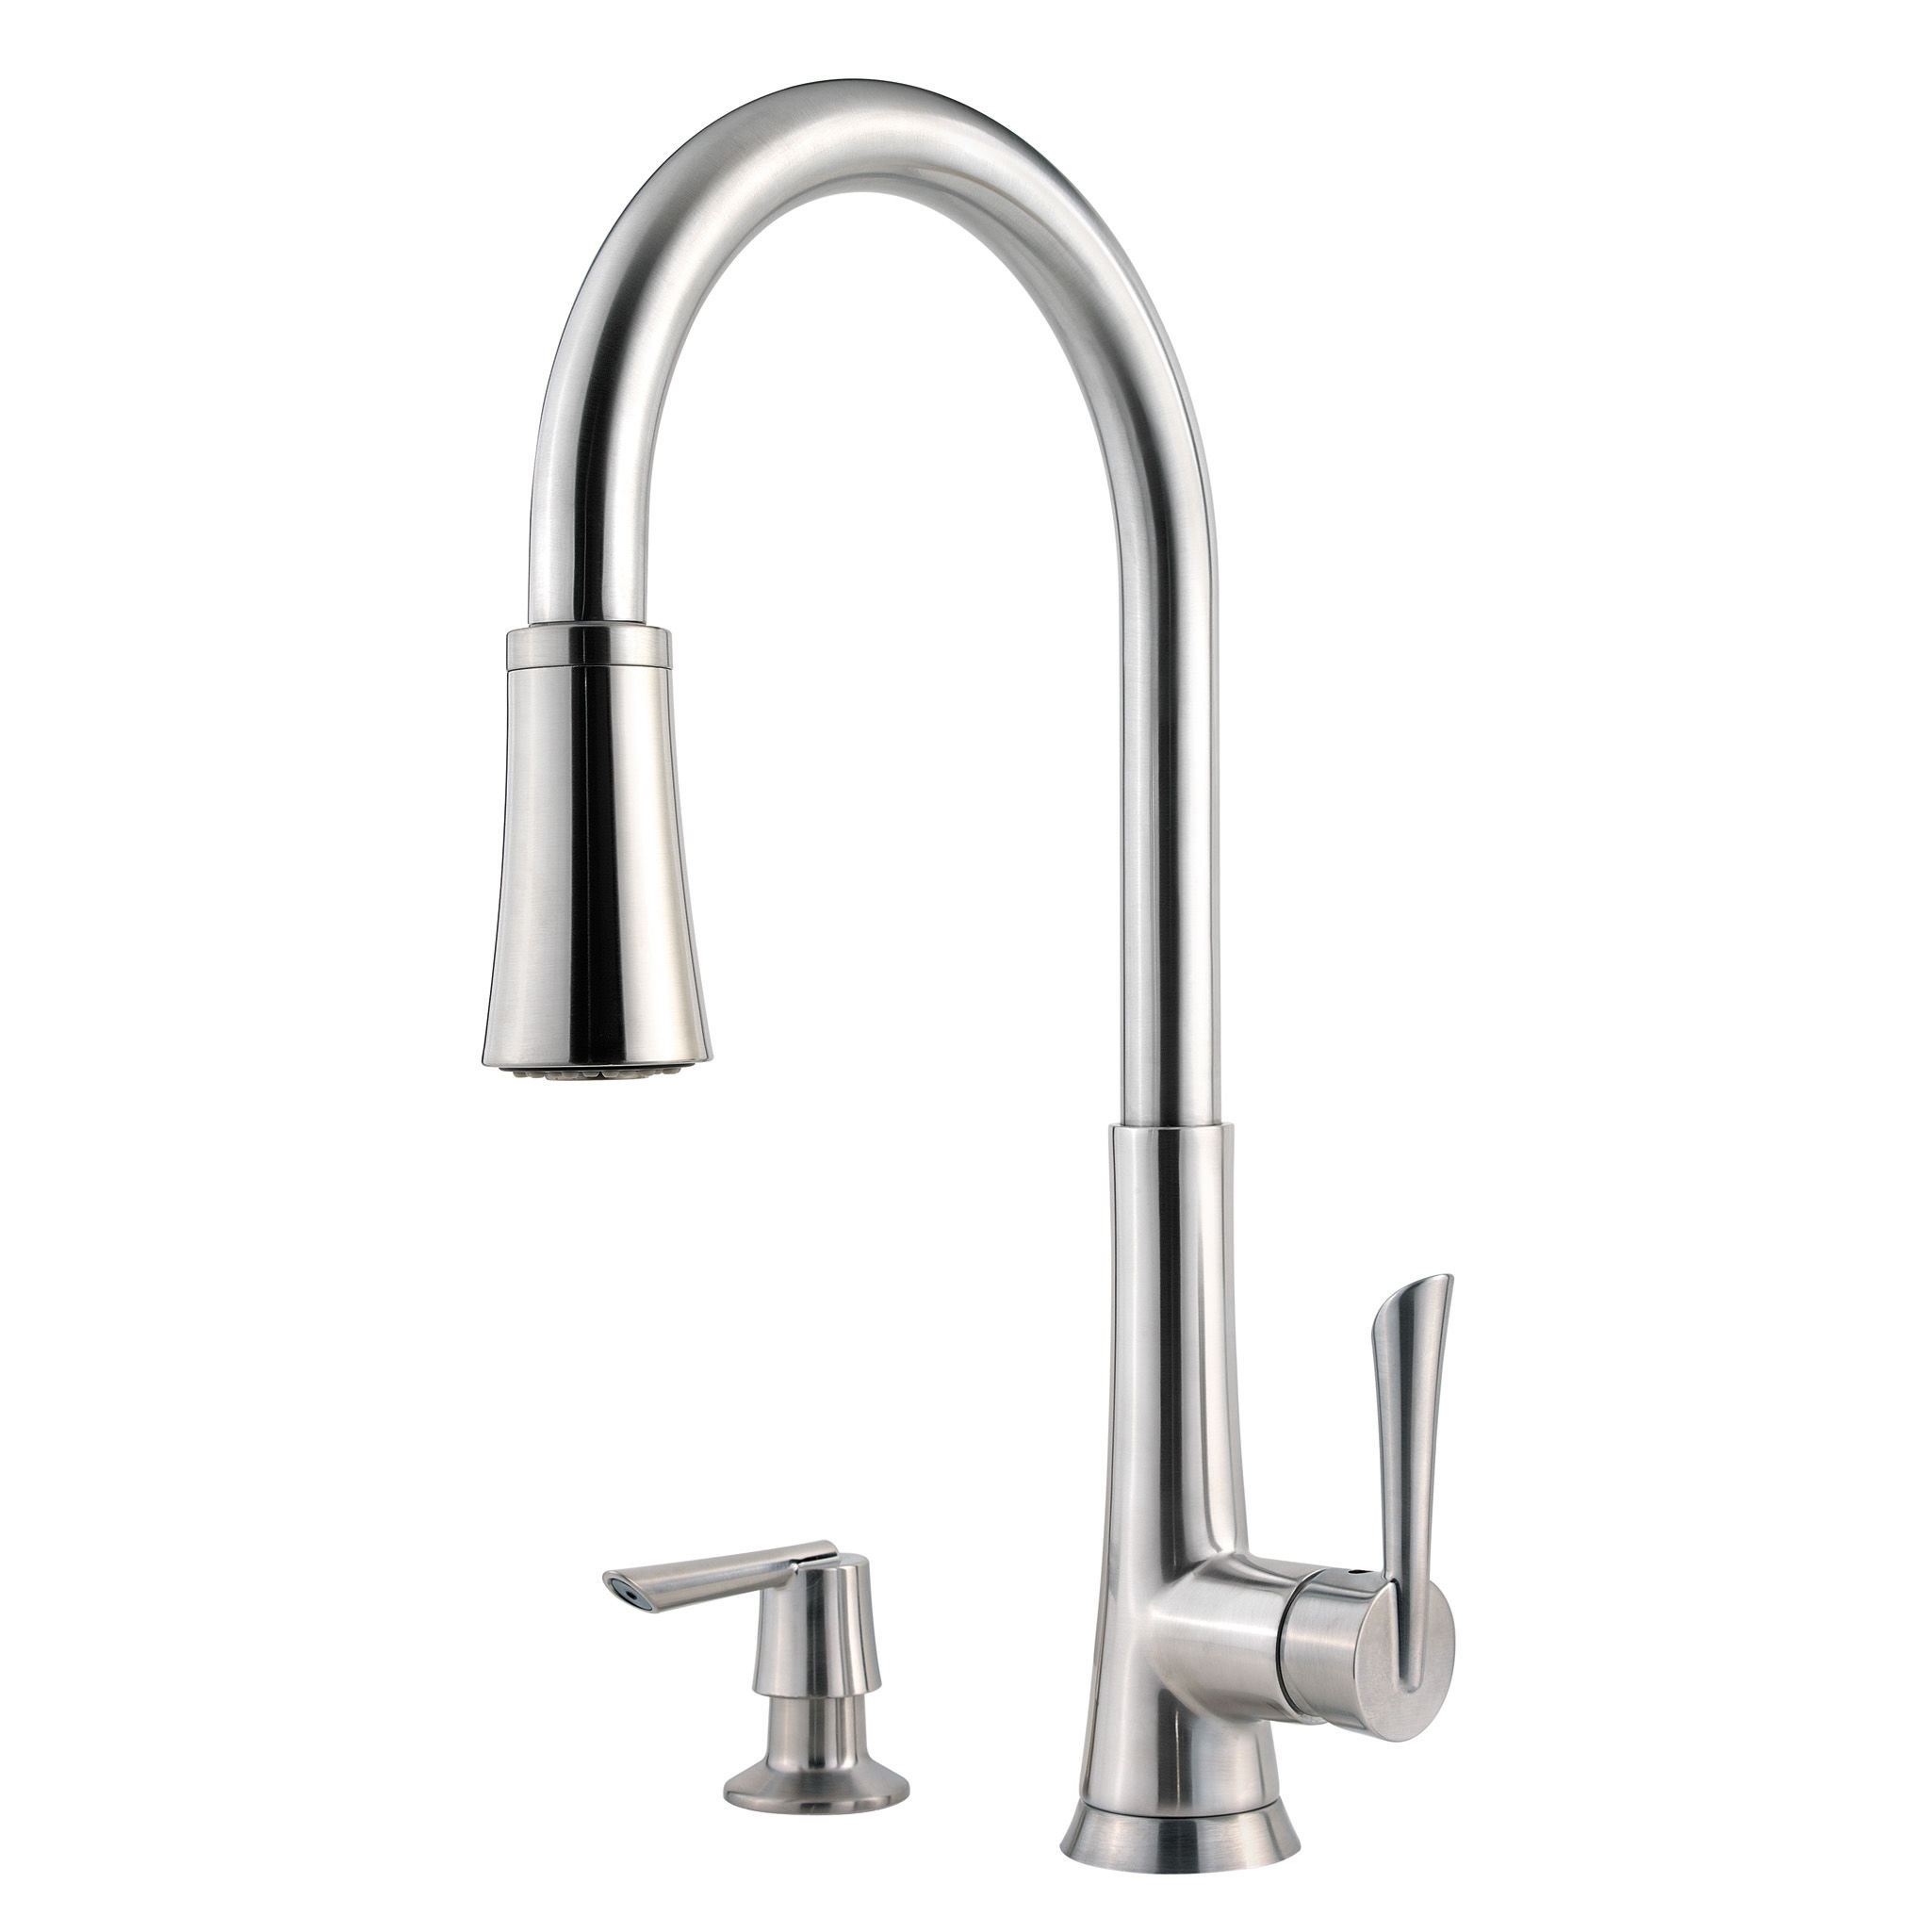 within bathroom ideas gorgeous head pfister faucet adapter price with attached proportions bathtub x shower tub